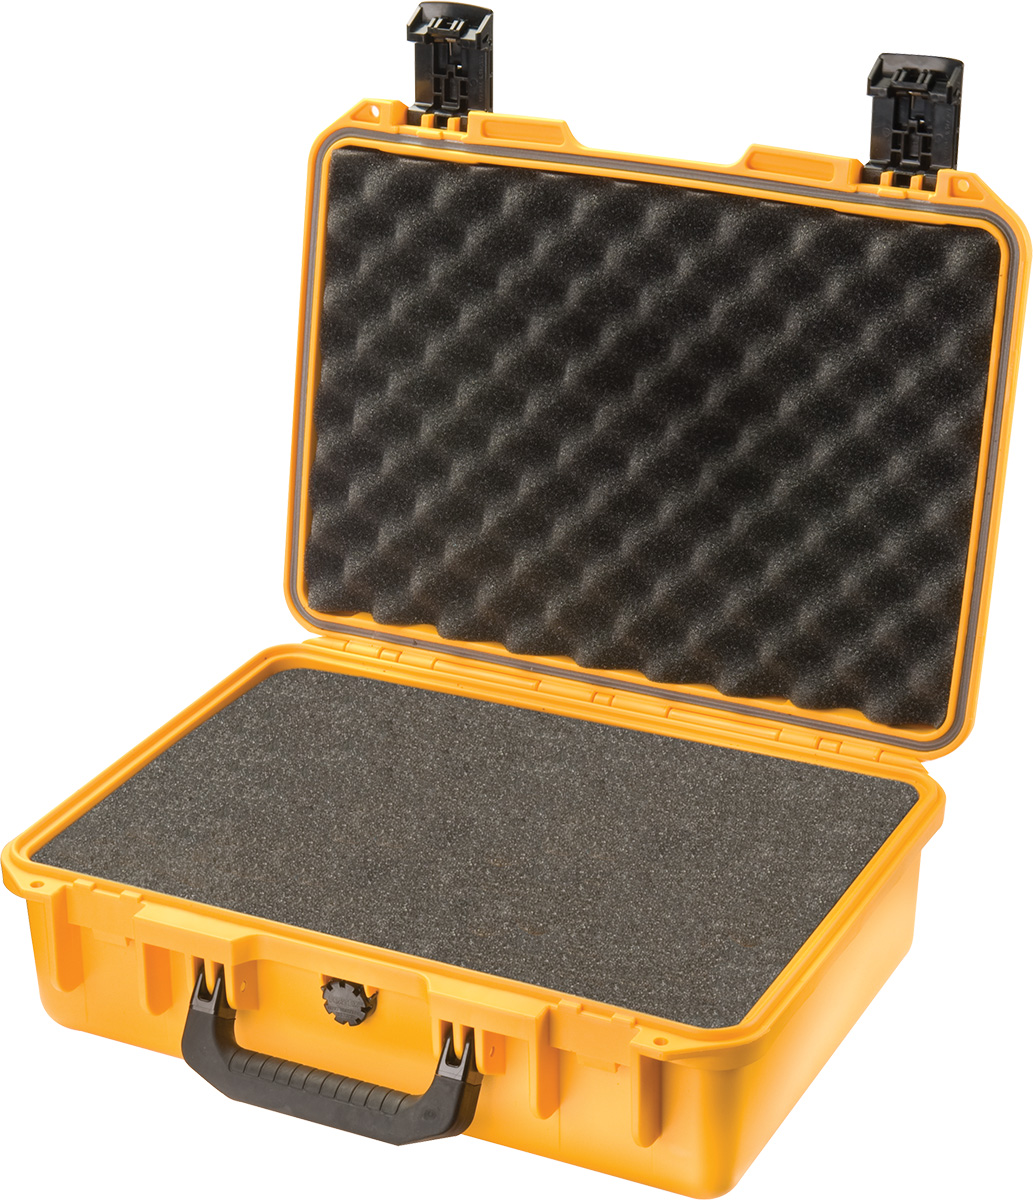 pelican im2200 yellow foam laptop case